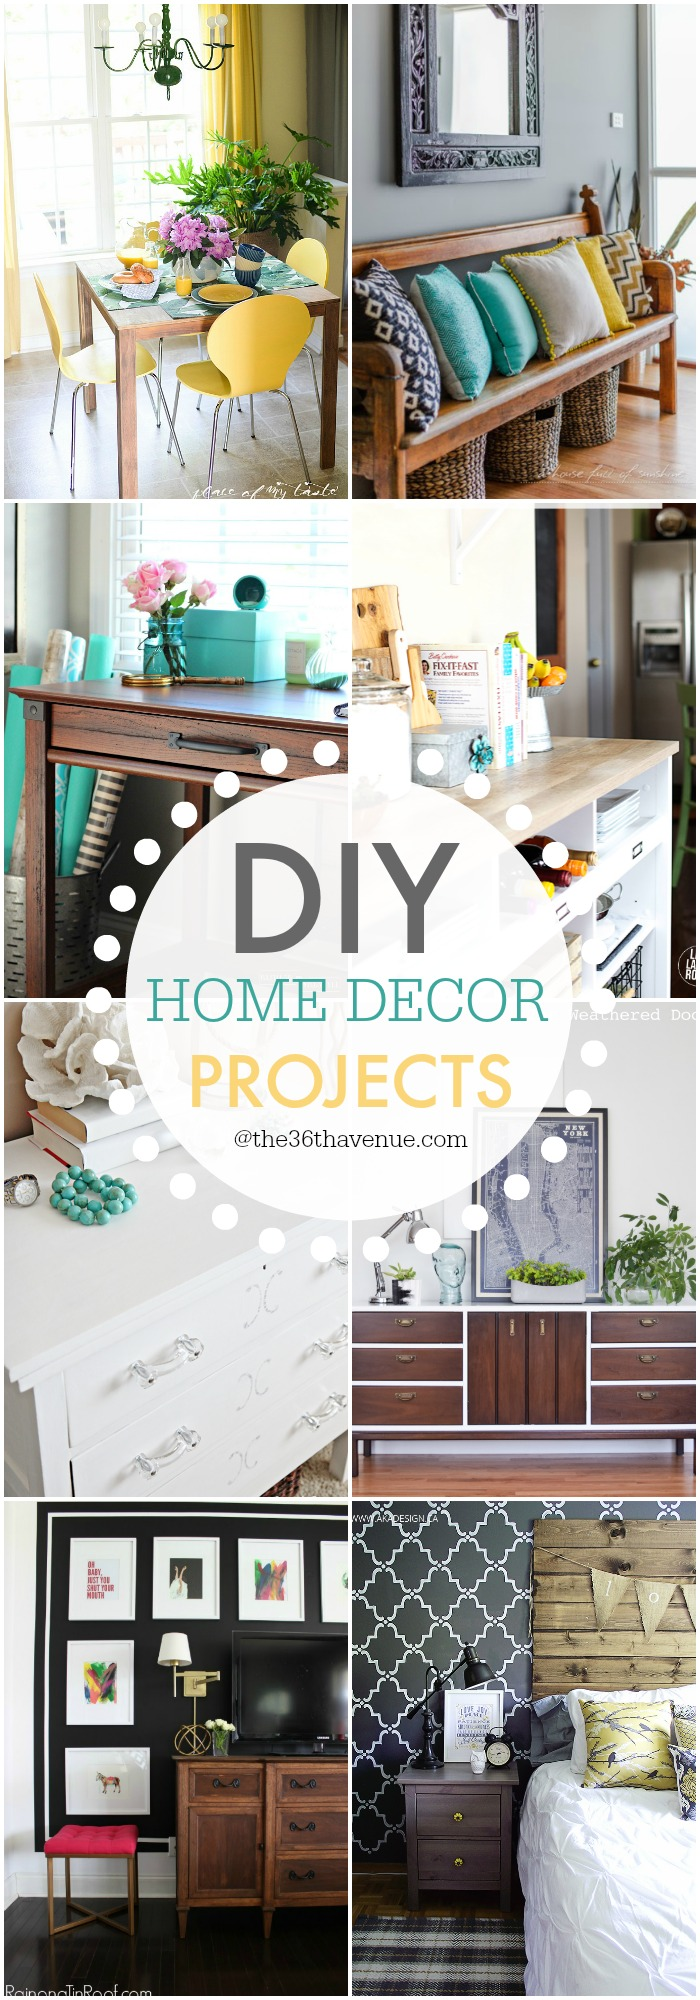 The 36th avenue diy home decor projects and ideas the 36th avenue Diy ideas for home design